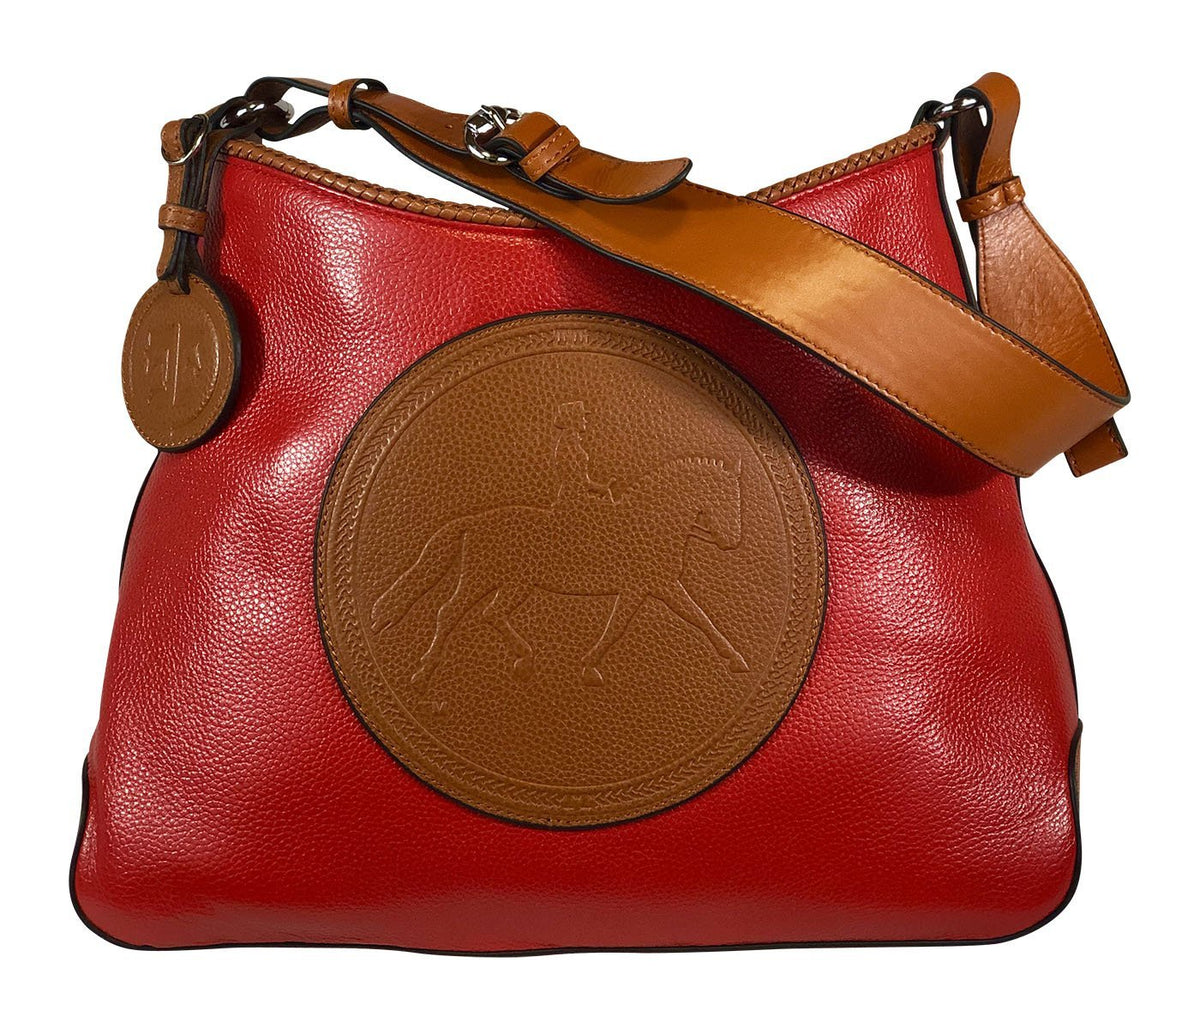 Tucker Tweed Leather Handbags Scarlet/Chestnut / Dressage The Tweed Manor Tote: Dressage